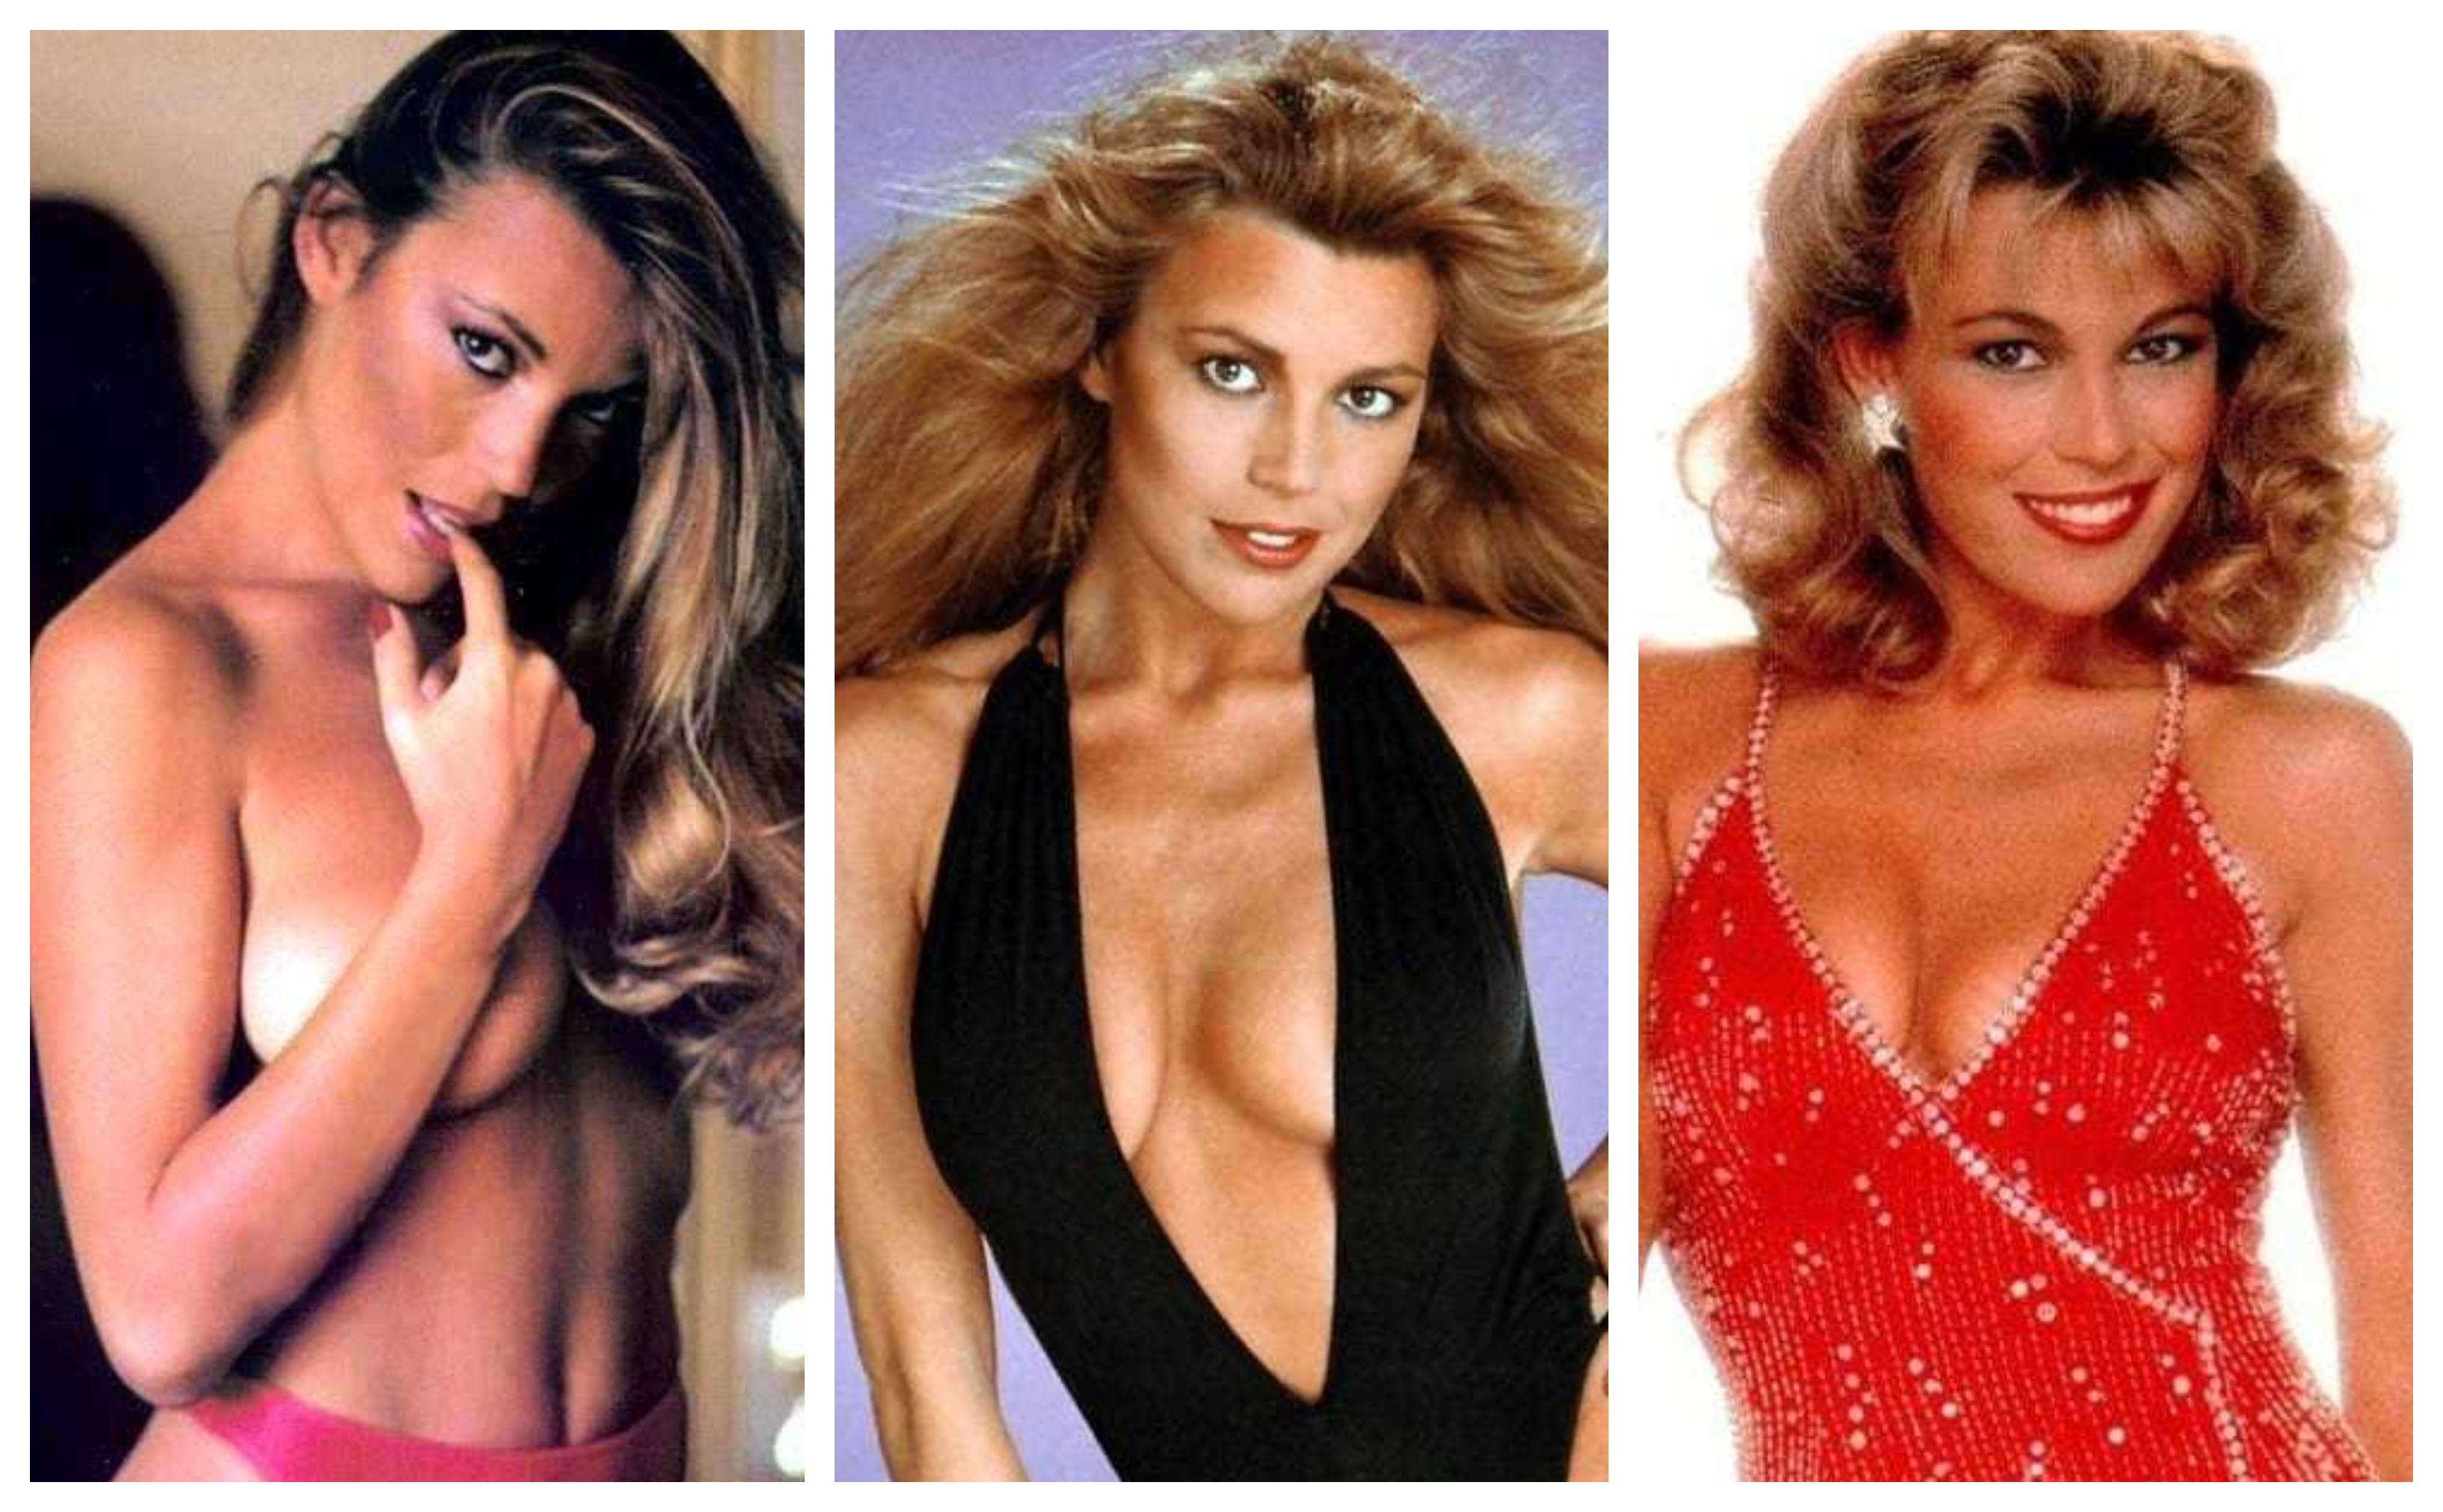 61 Sexy Vanna White Pictres Which Will Make You Slobber For Her